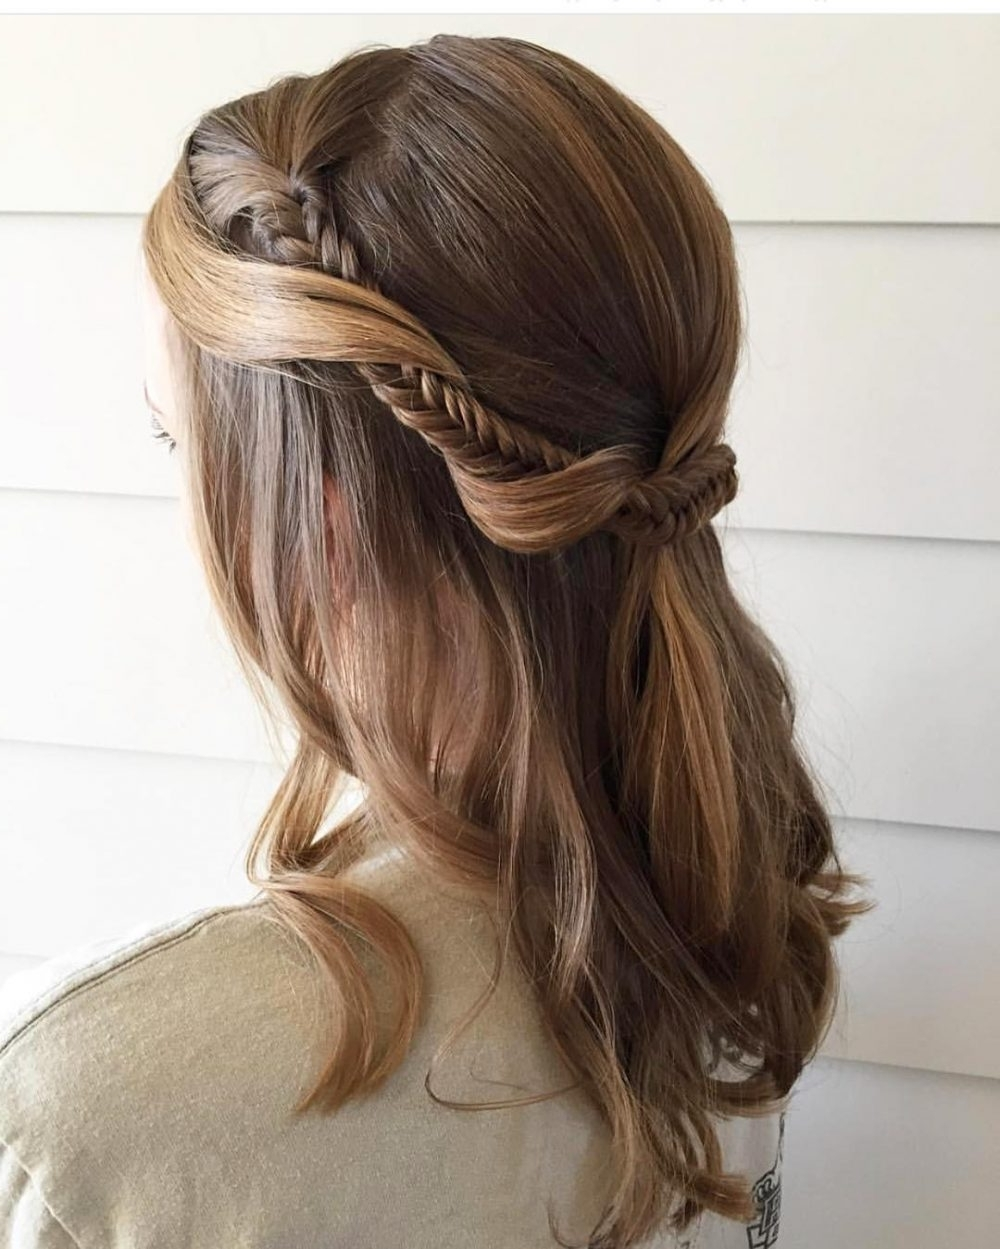 33 Ridiculously Easy Diy Chic Updos Throughout Easiest Updo Hairstyles (View 8 of 15)